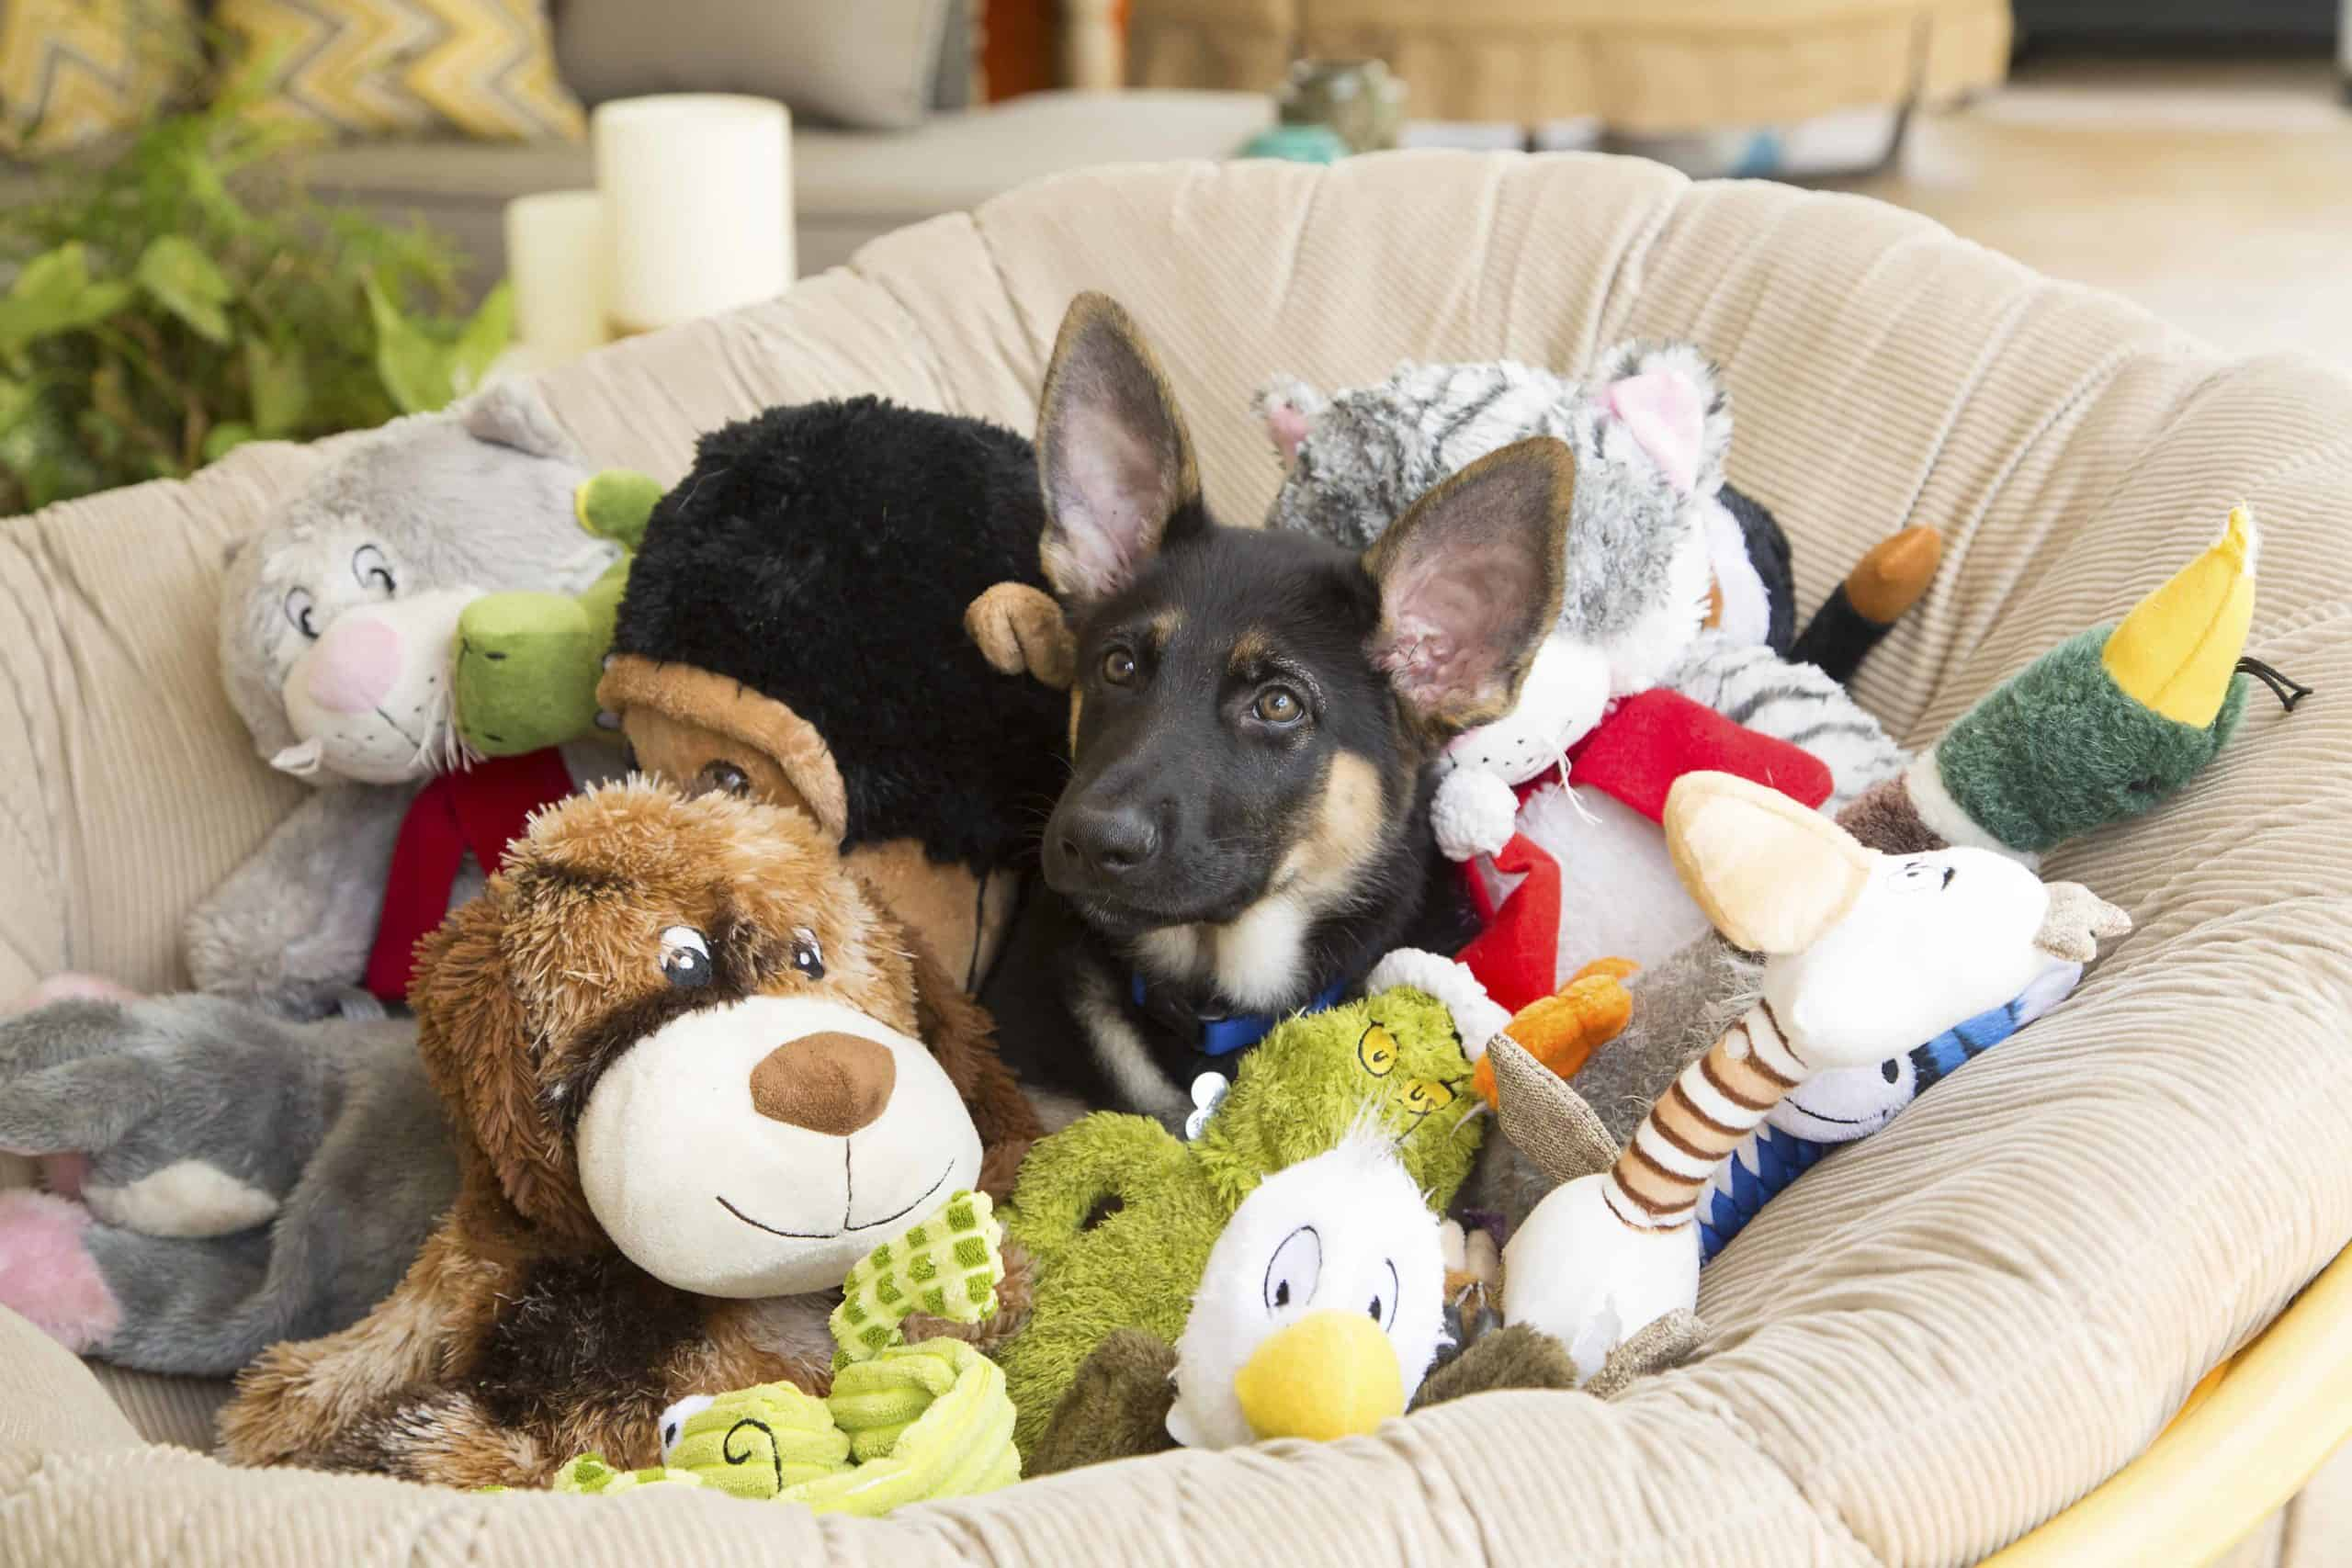 German shepherd puppy snuggles in dog bed filled with dog toys.